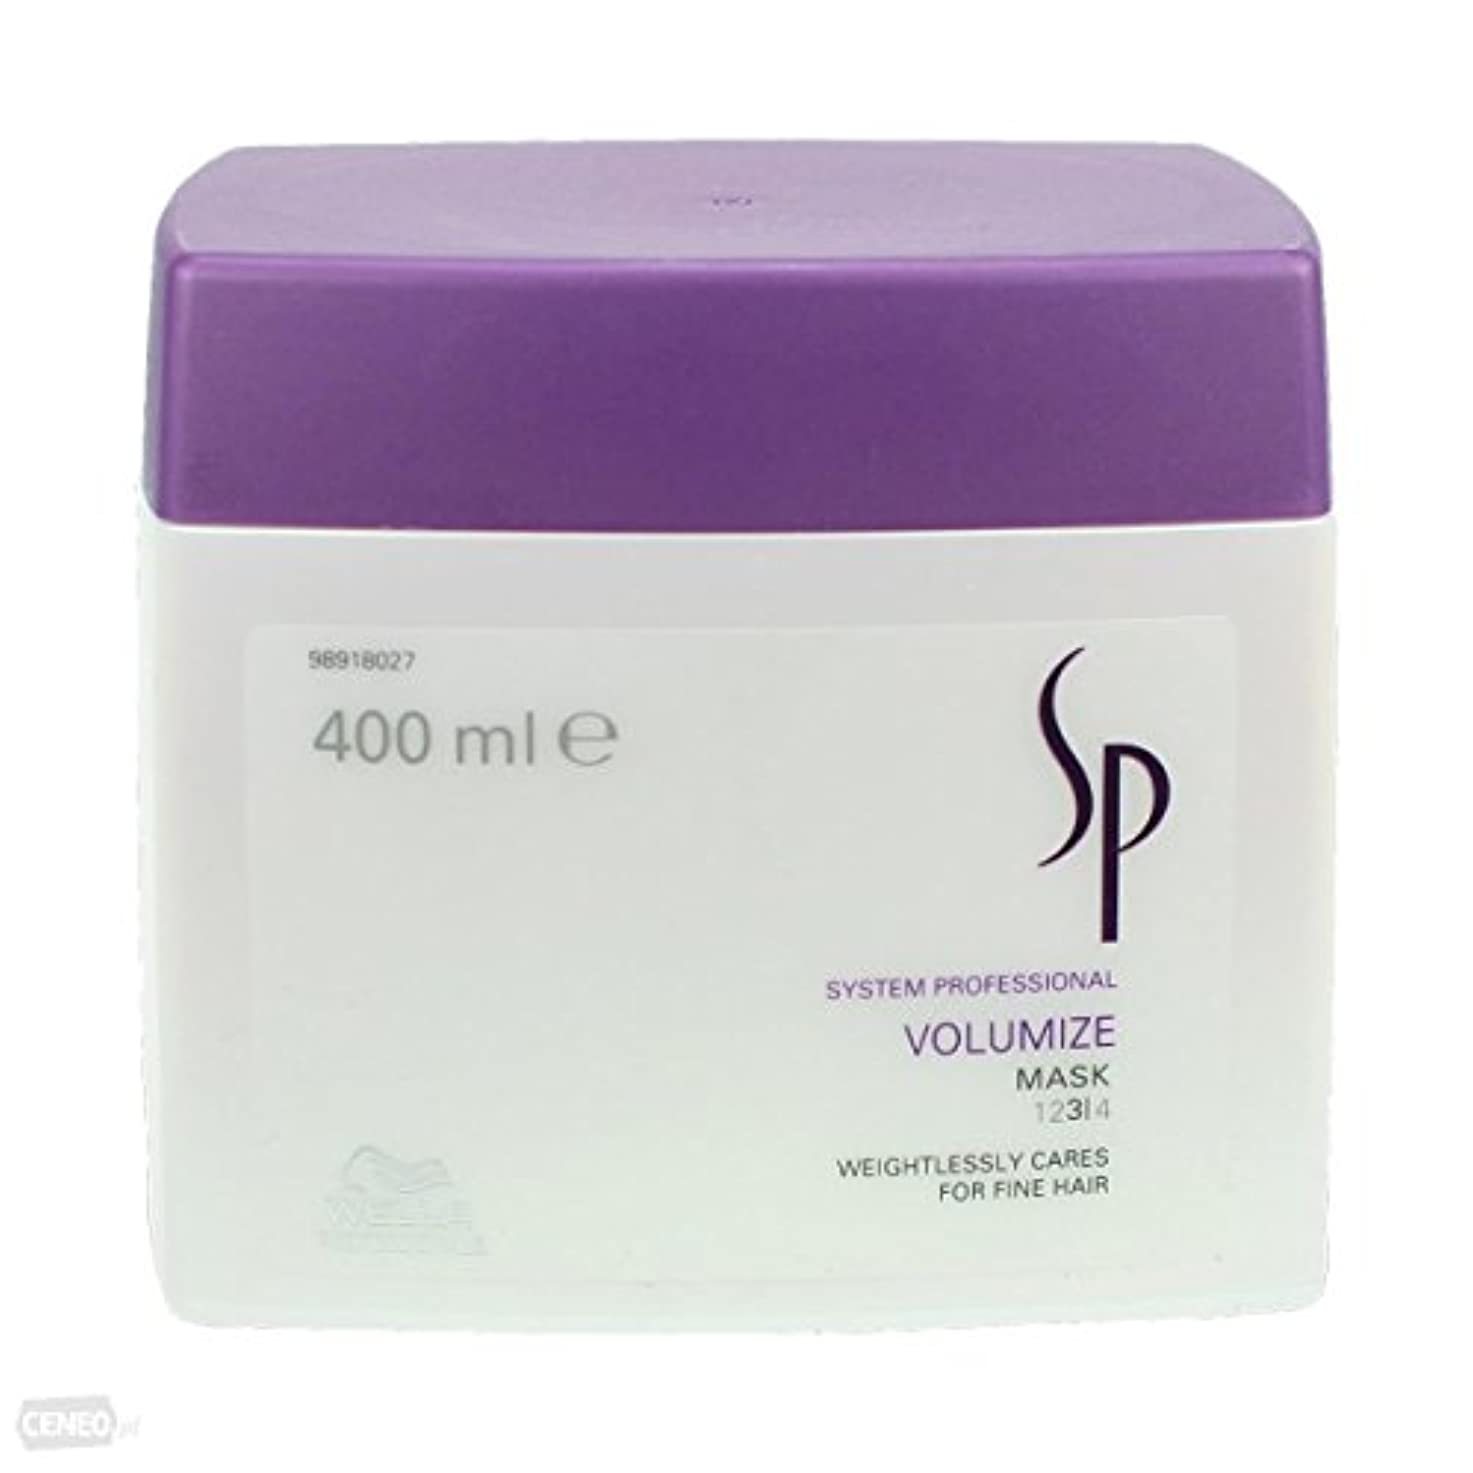 航海くぼみ通訳Wella SP Volumize Mask ( For Fine Hair ) - 400ml/13.33oz by Wella [並行輸入品]